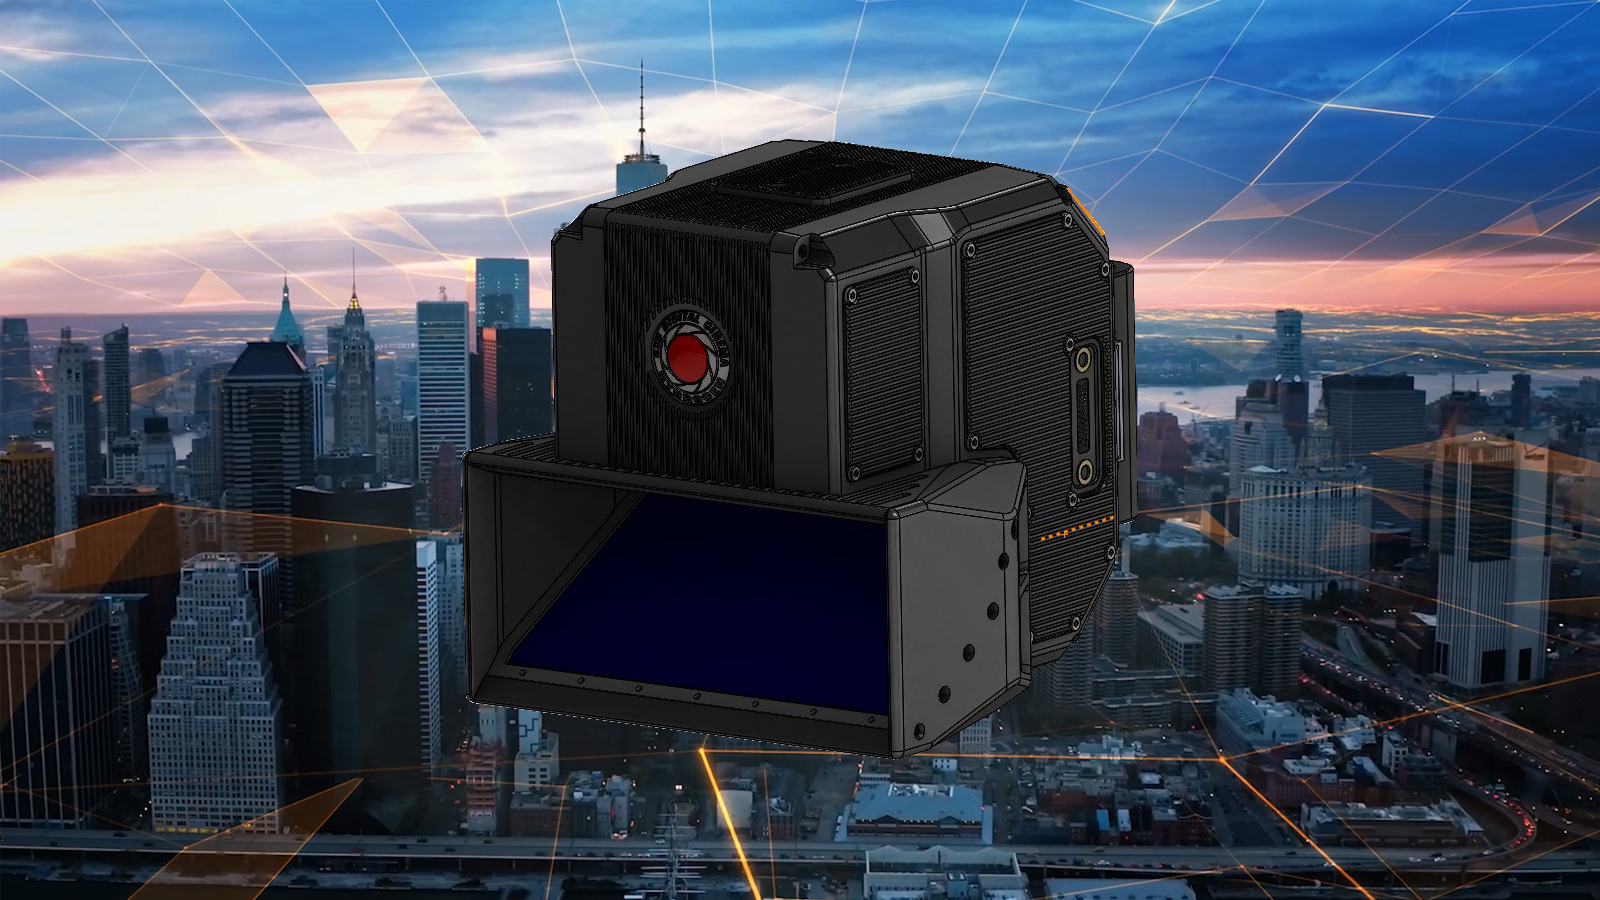 RED and Lucid unveil 8K 3D camera that produces 4V holographic video